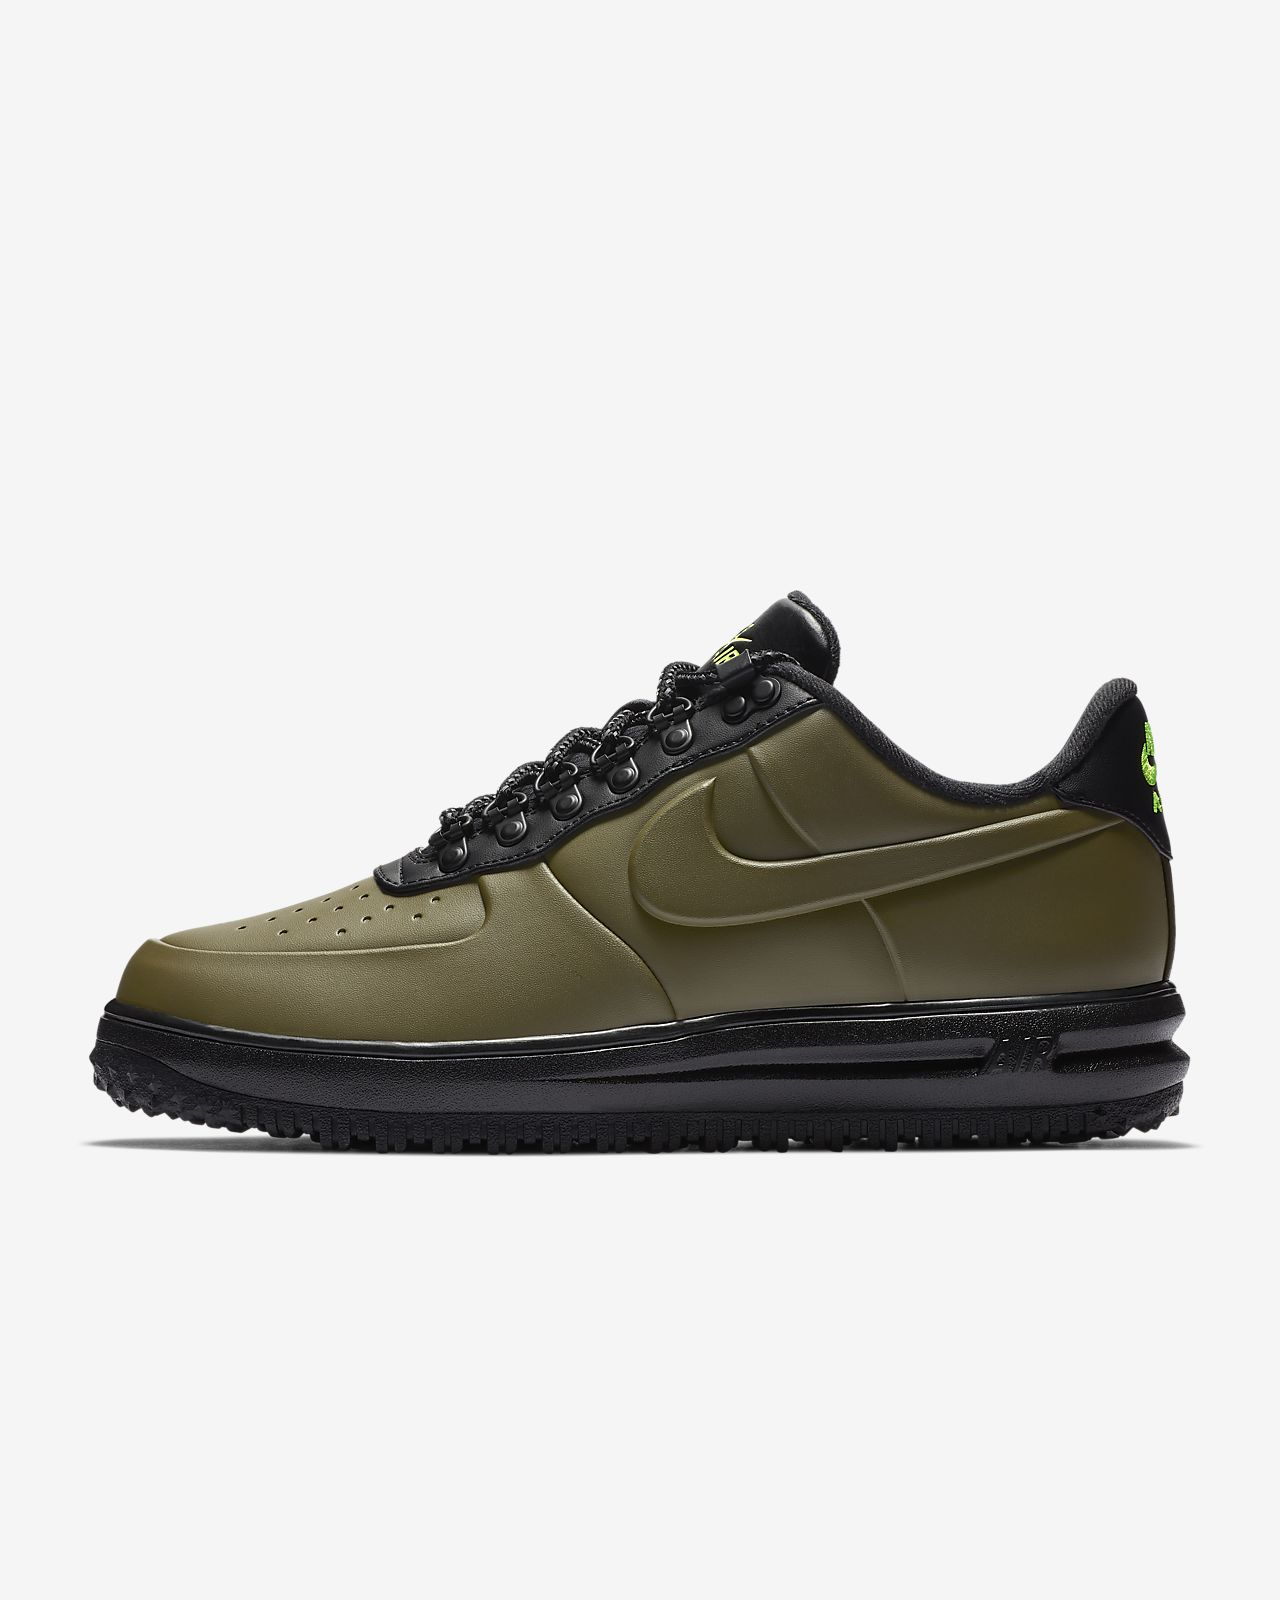 on sale bf7ad d28d2 ... promo code for nike lunar force 1 duckboot low herresko 81201 03f15 ...